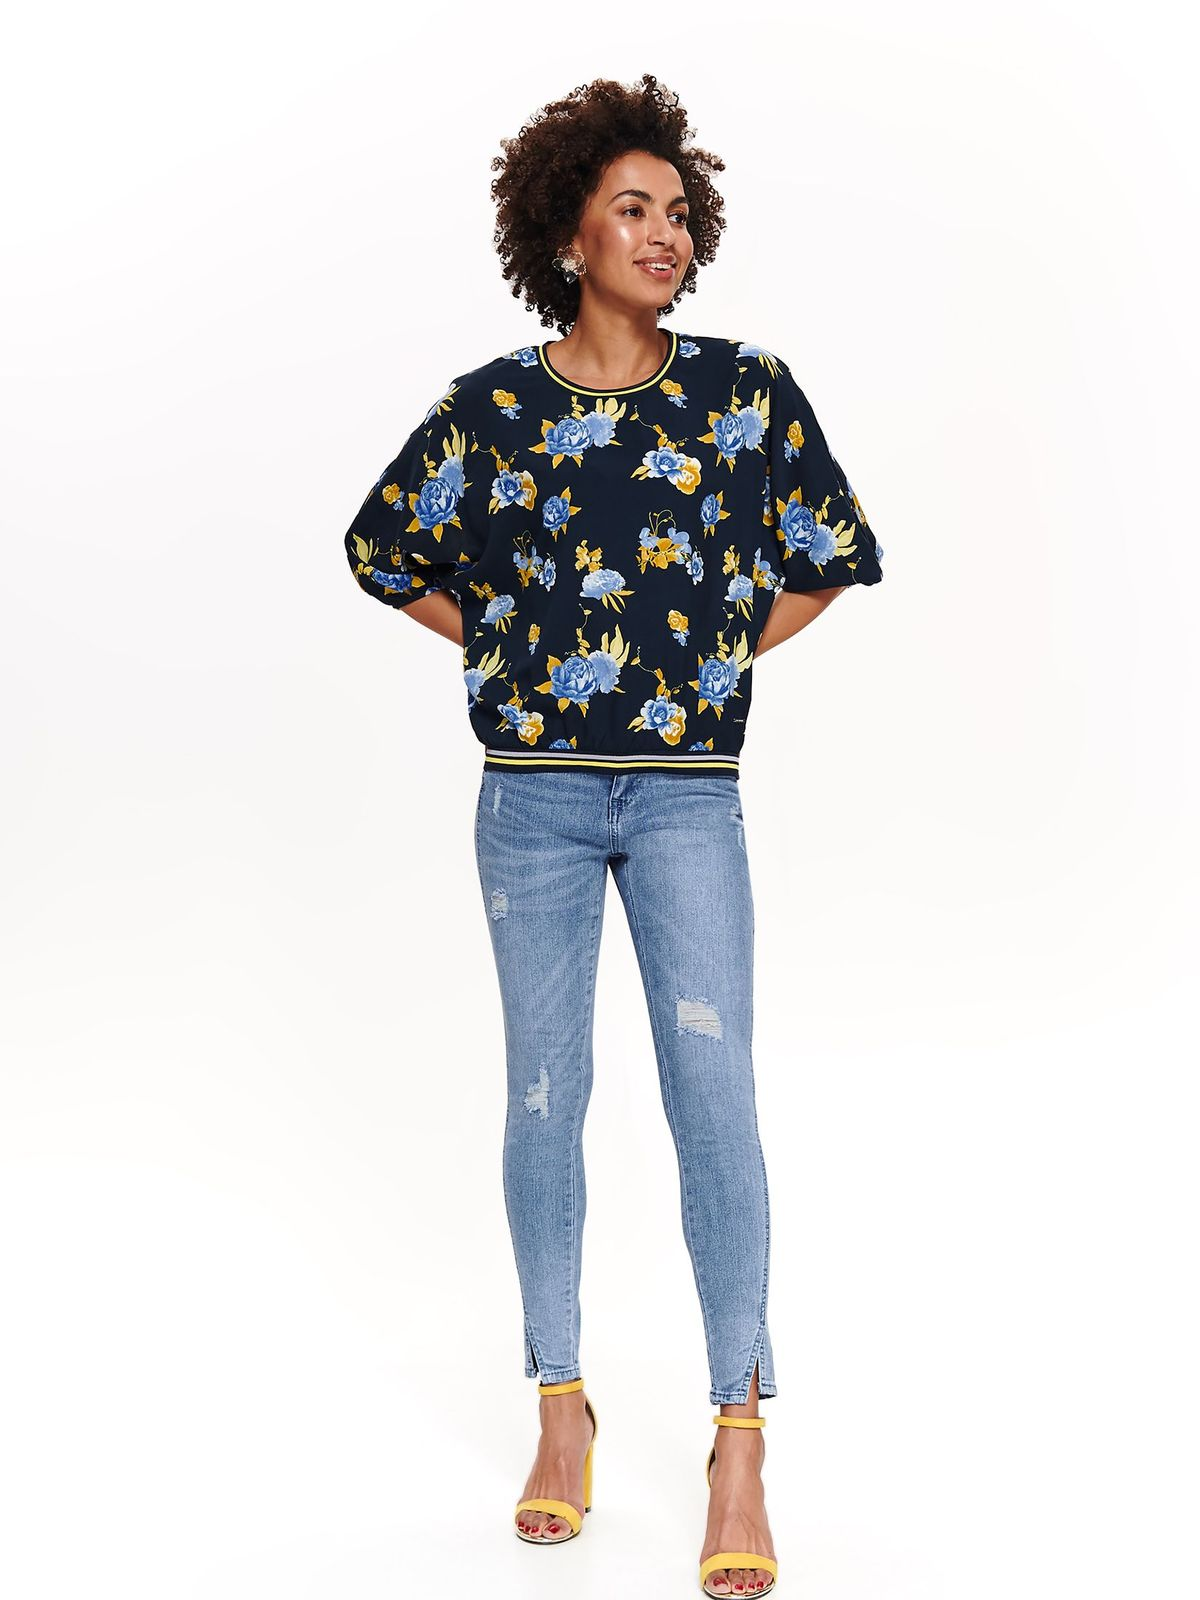 Top Secret darkblue casual flared women`s blouse with 3/4 sleeves with floral prints